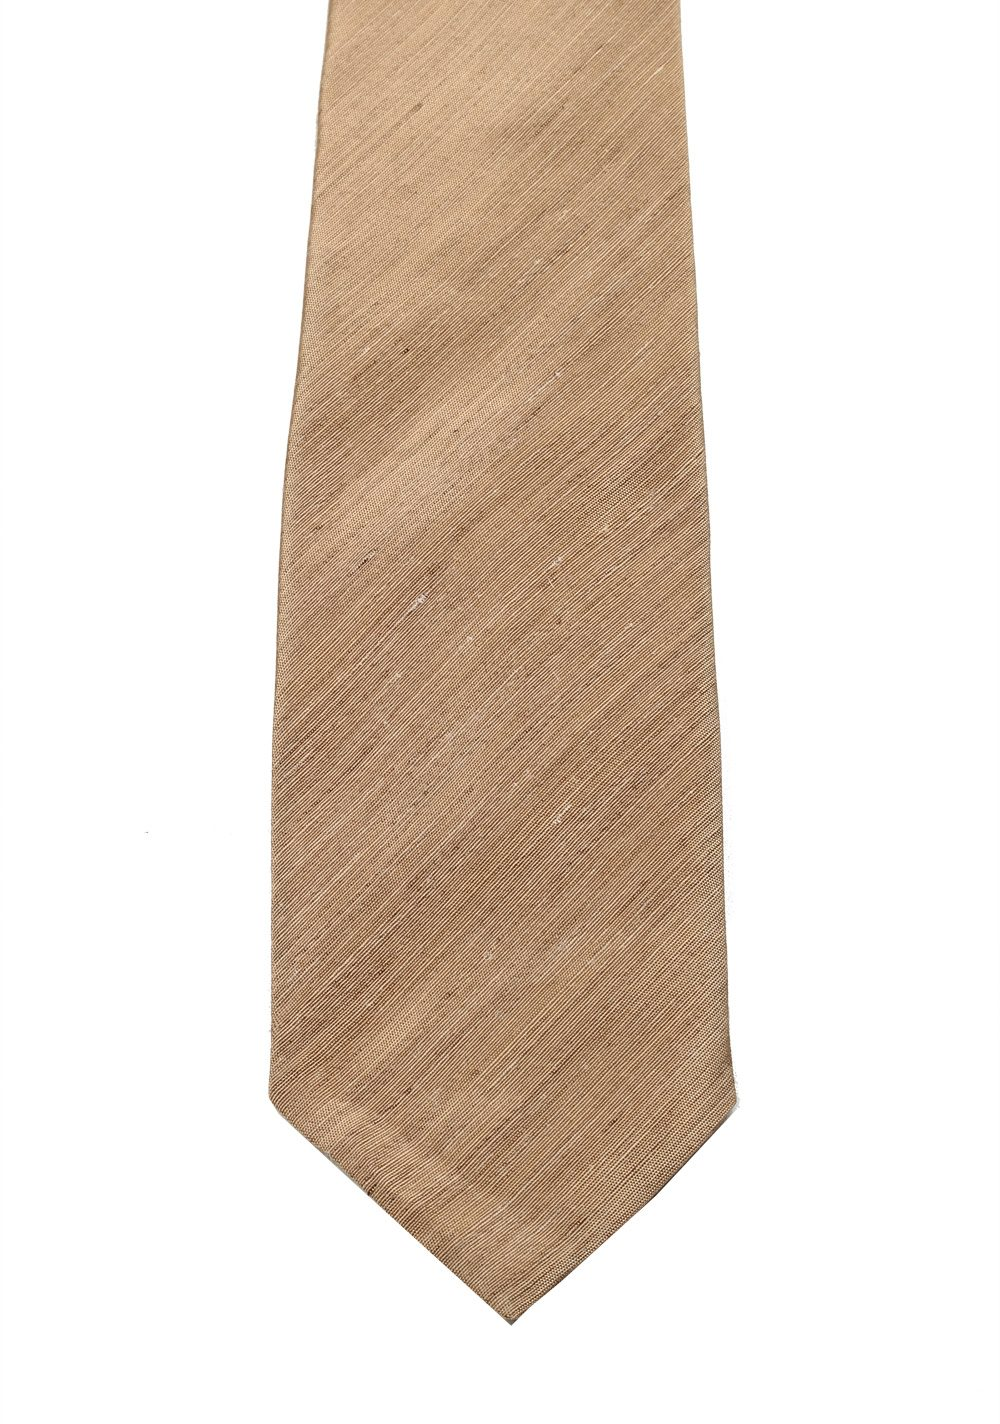 TOM FORD Solid Beige Tie In Silk | Costume Limité